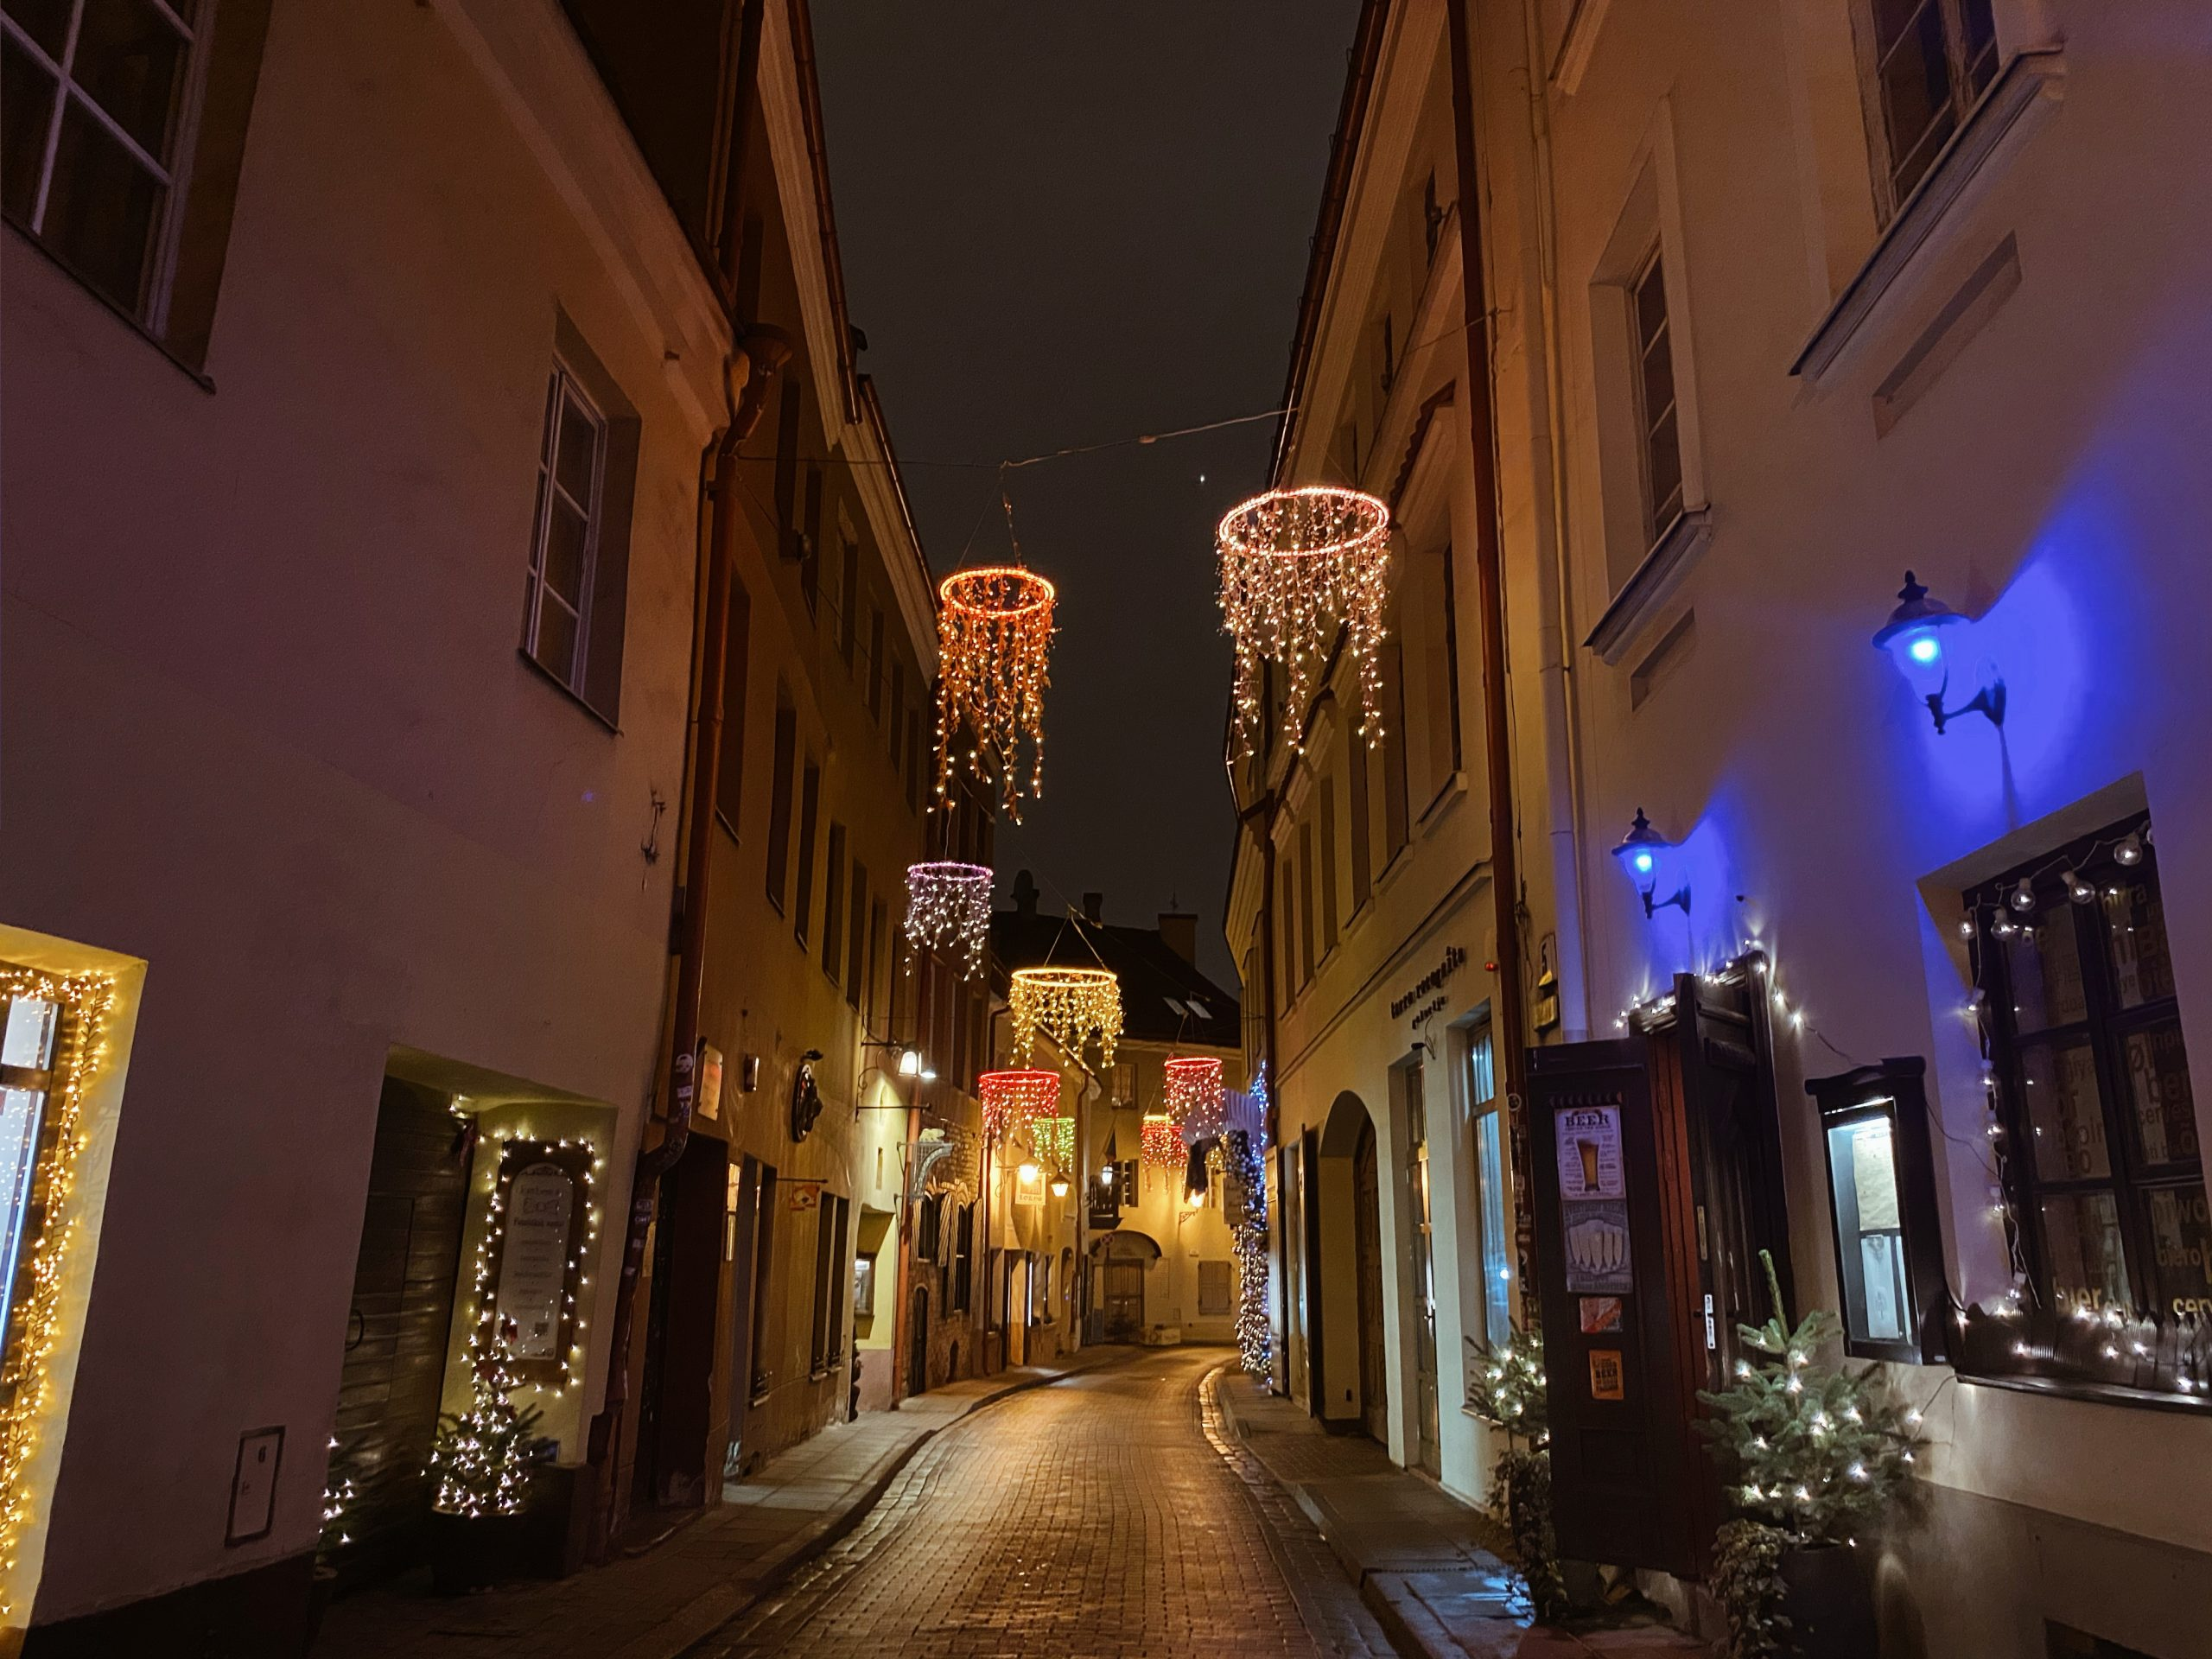 Shopping street in the old town of Vilnius